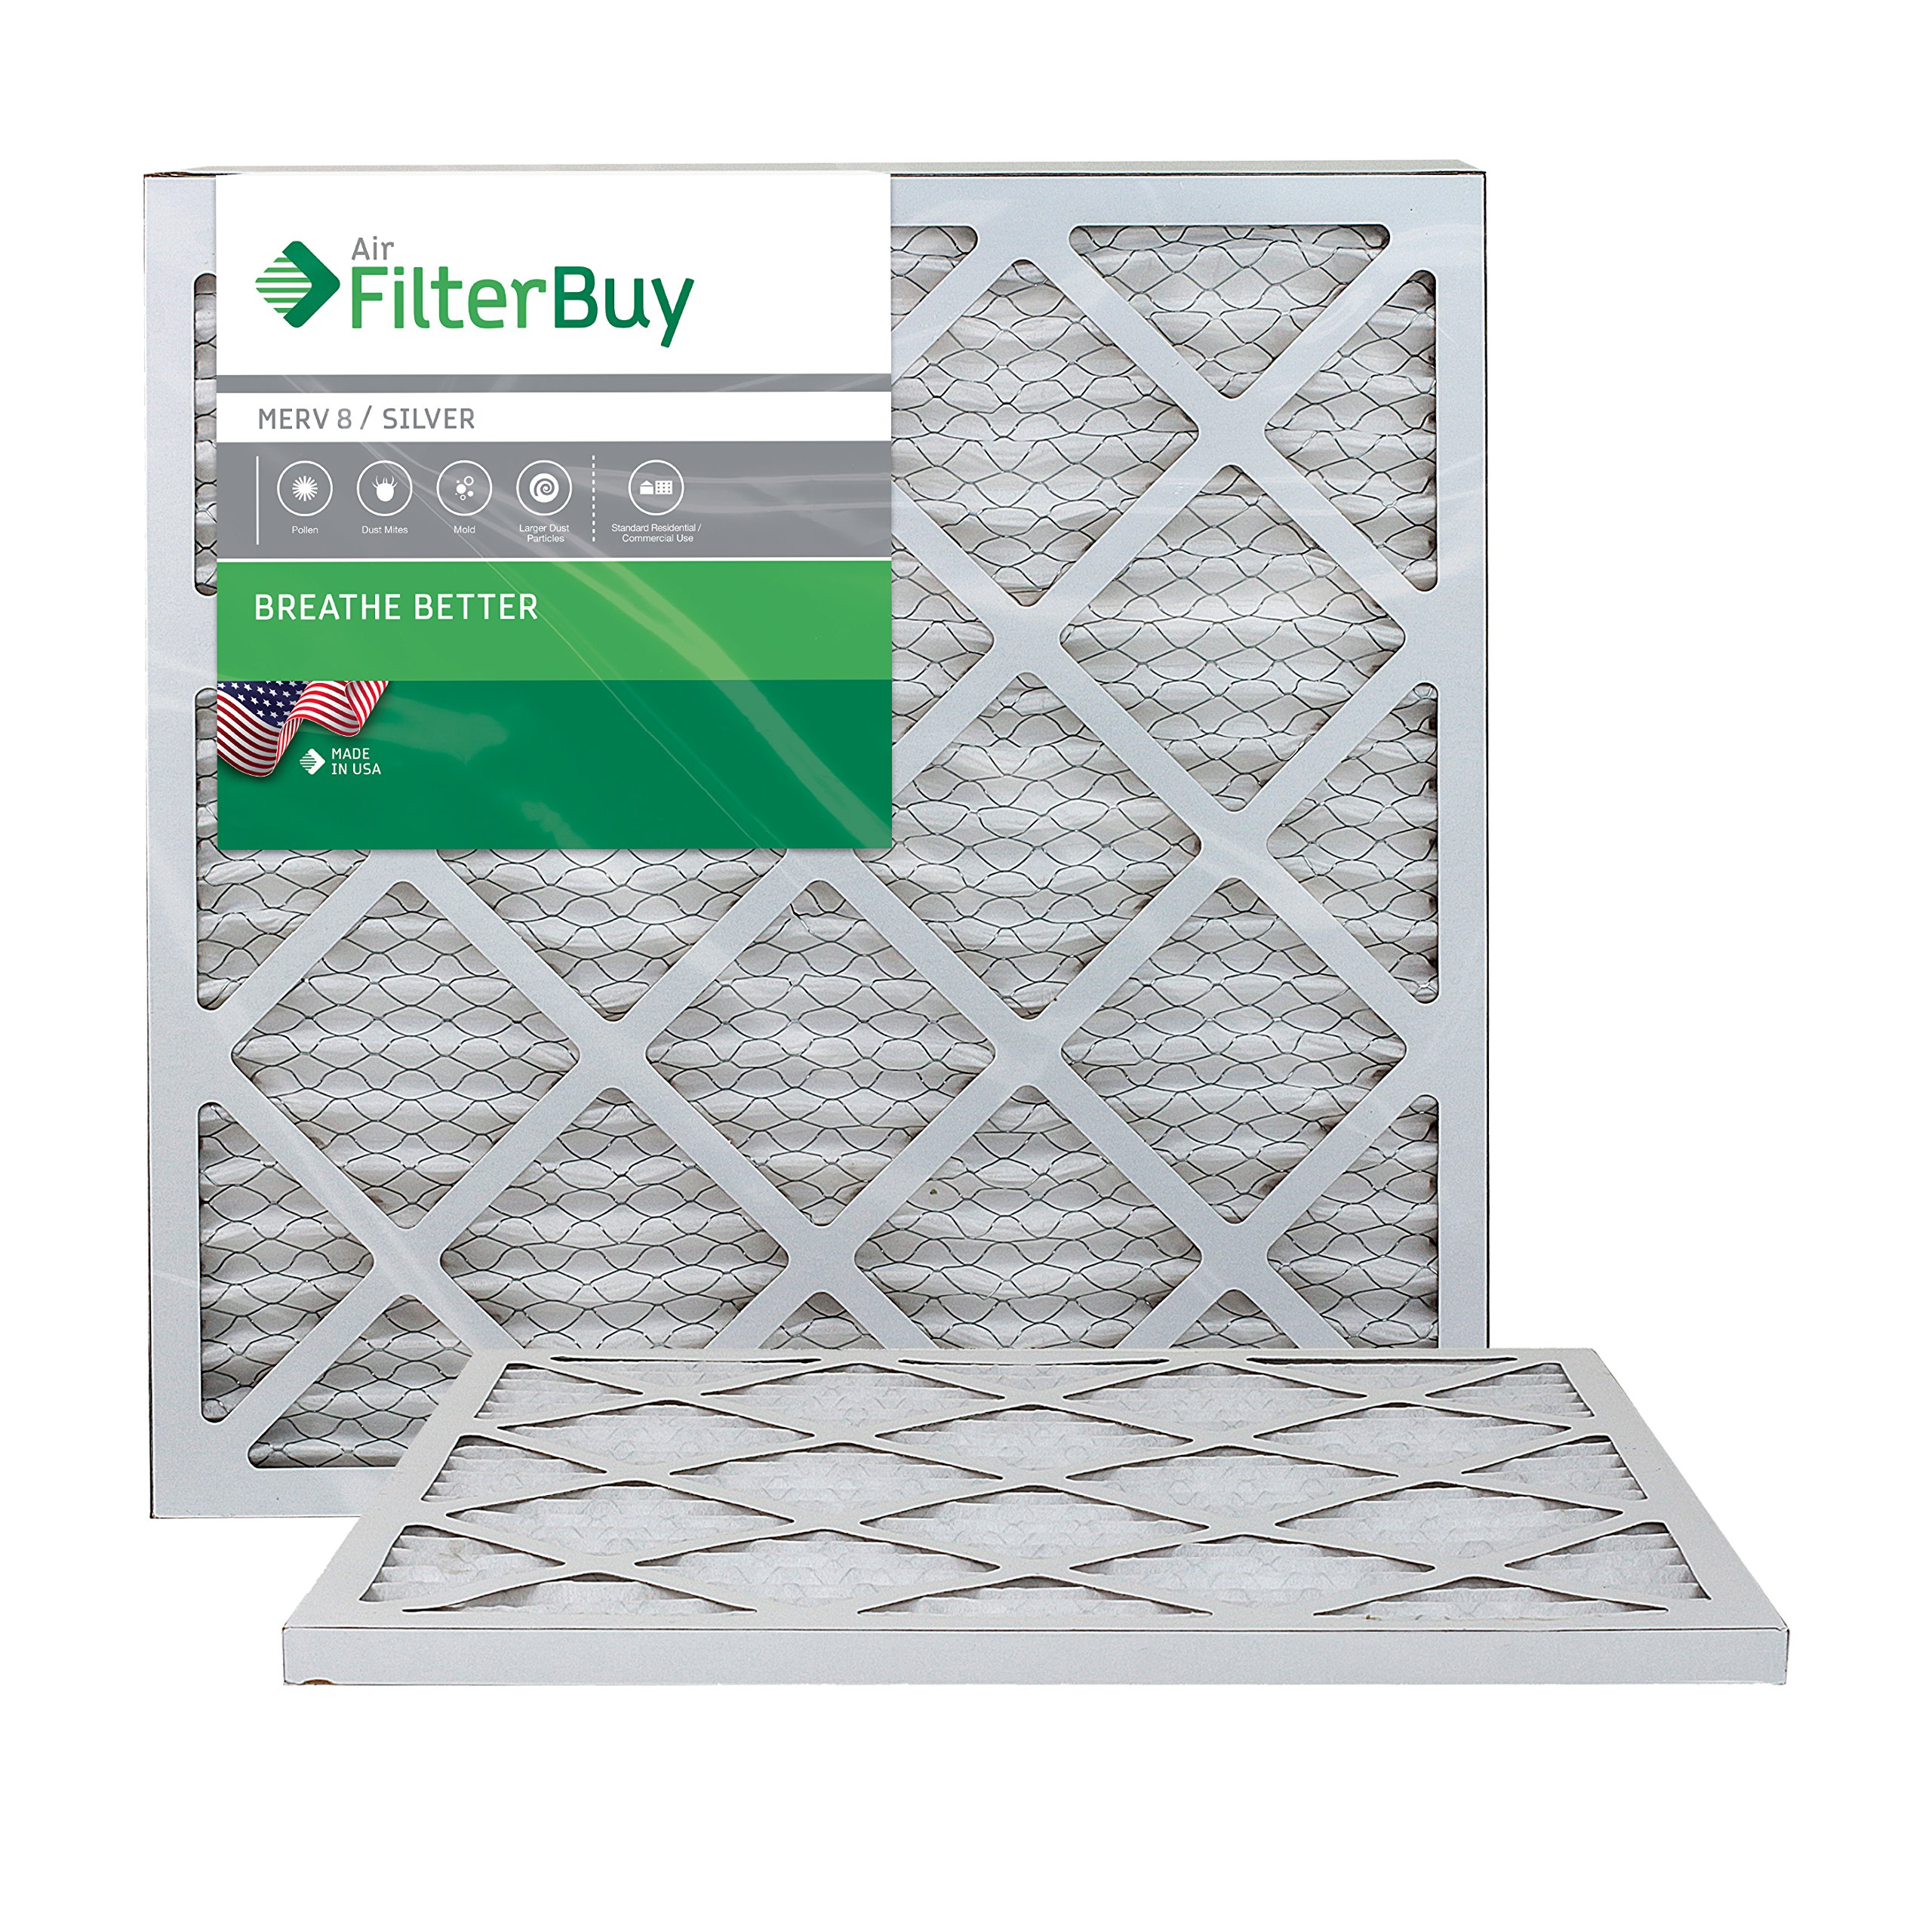 FilterBuy 18x20x1 MERV 8 Pleated AC Furnace Air Filter, (Pack of 2 Filters), 18x20x1 – Silver